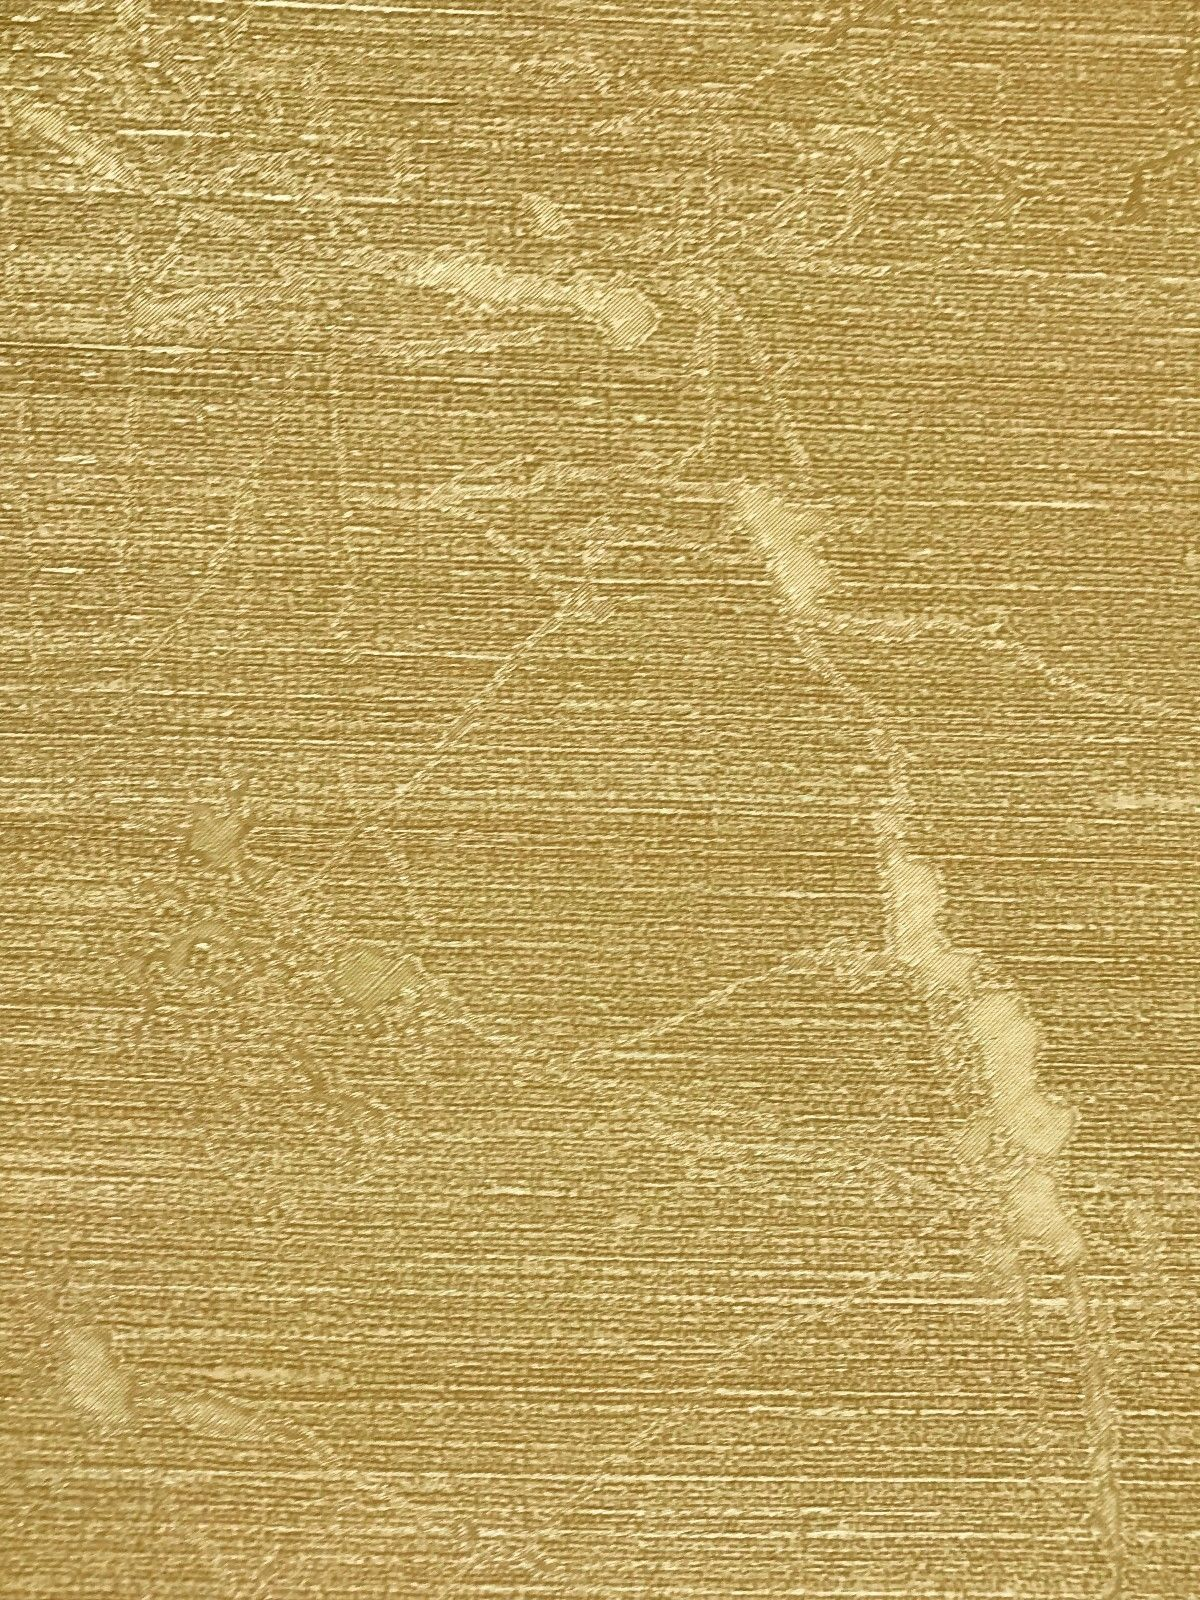 Embossed Wallpaper gold metallic Textured and 50 similar items